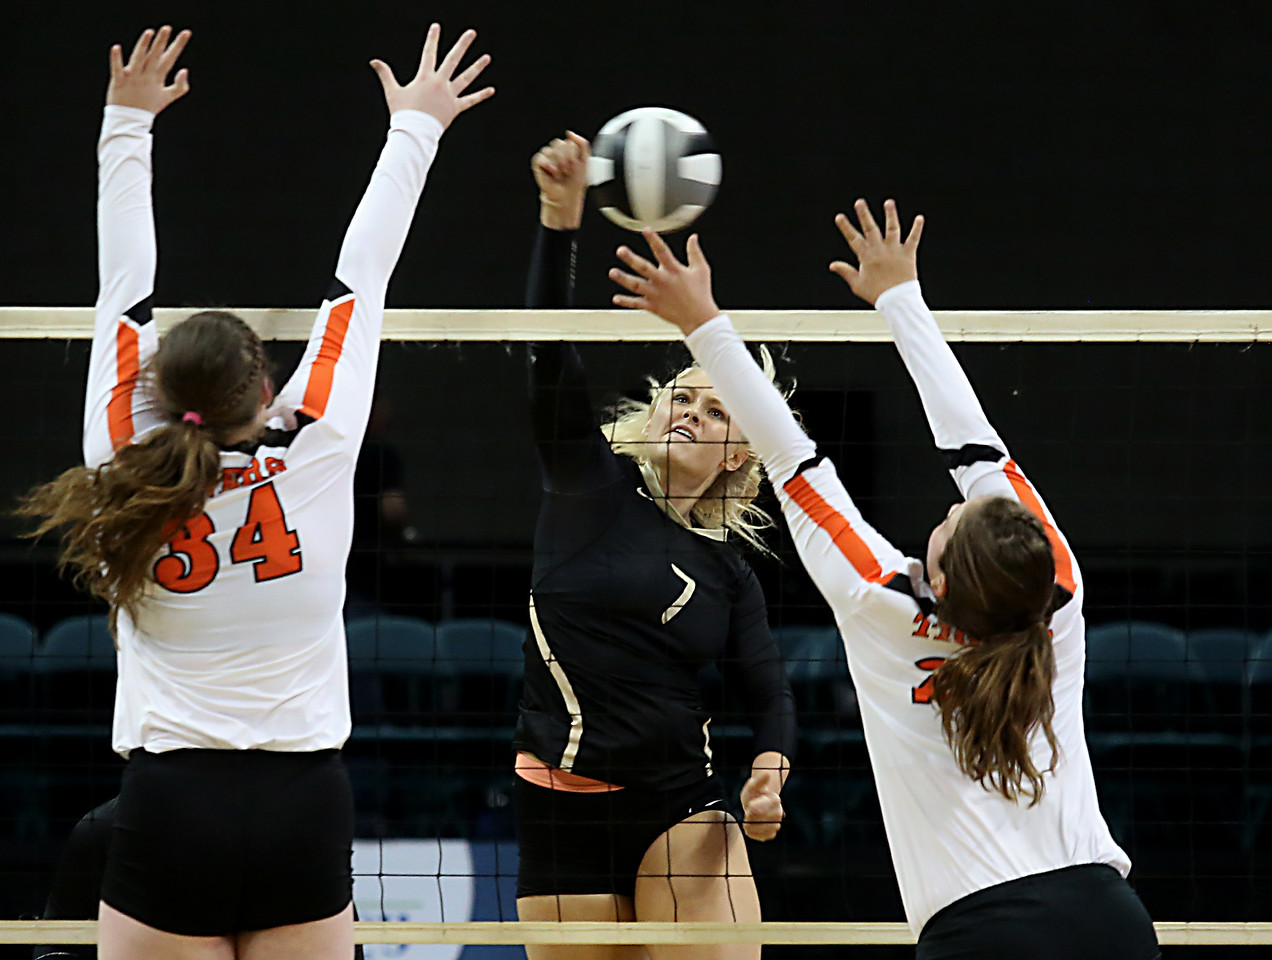 E.L. Hubbard / Special to GateHouse Ohio Media<br /> New Philadelphia Tuscarawas Central Catholic's Abbi Gillson fires a volley between Jackson Center's Alicia Kessler and Camryn Hoehne during their Division IV State Championship game at Wright State's Nutter Center in Fairborn Saturday, Nov. 12, 2016.